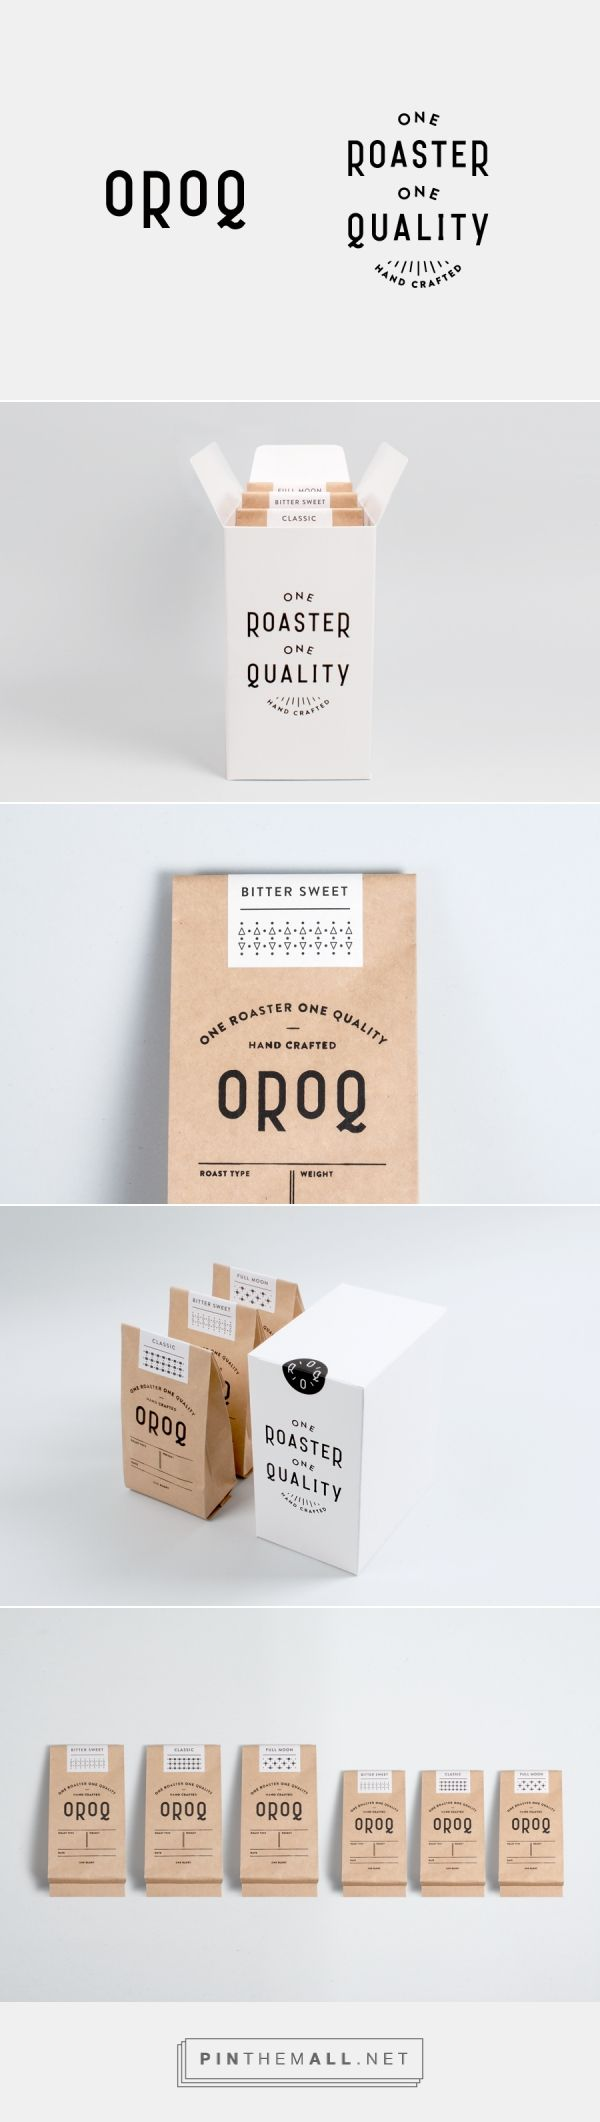 The Design Blog - Design Inspiration - created via http://pinthemall.net